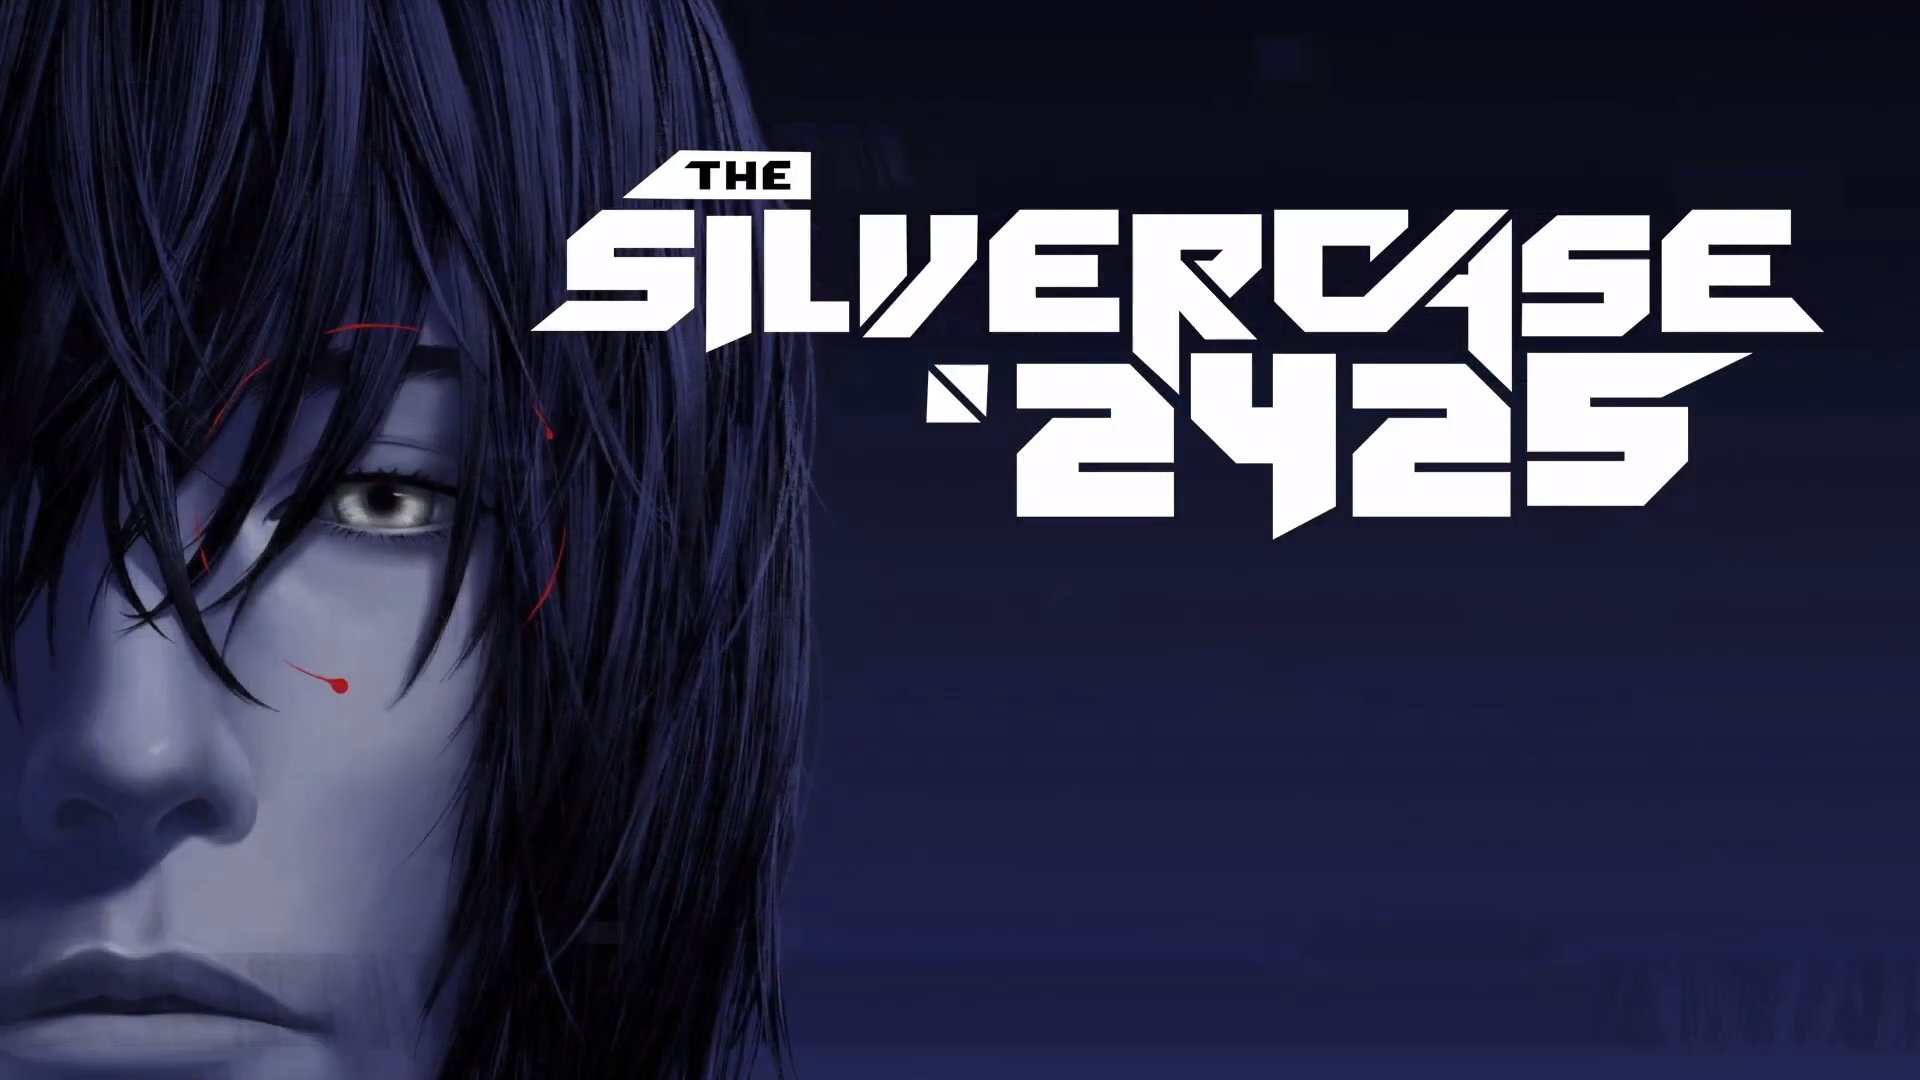 The Silver Case 2425 for Switch Heads West